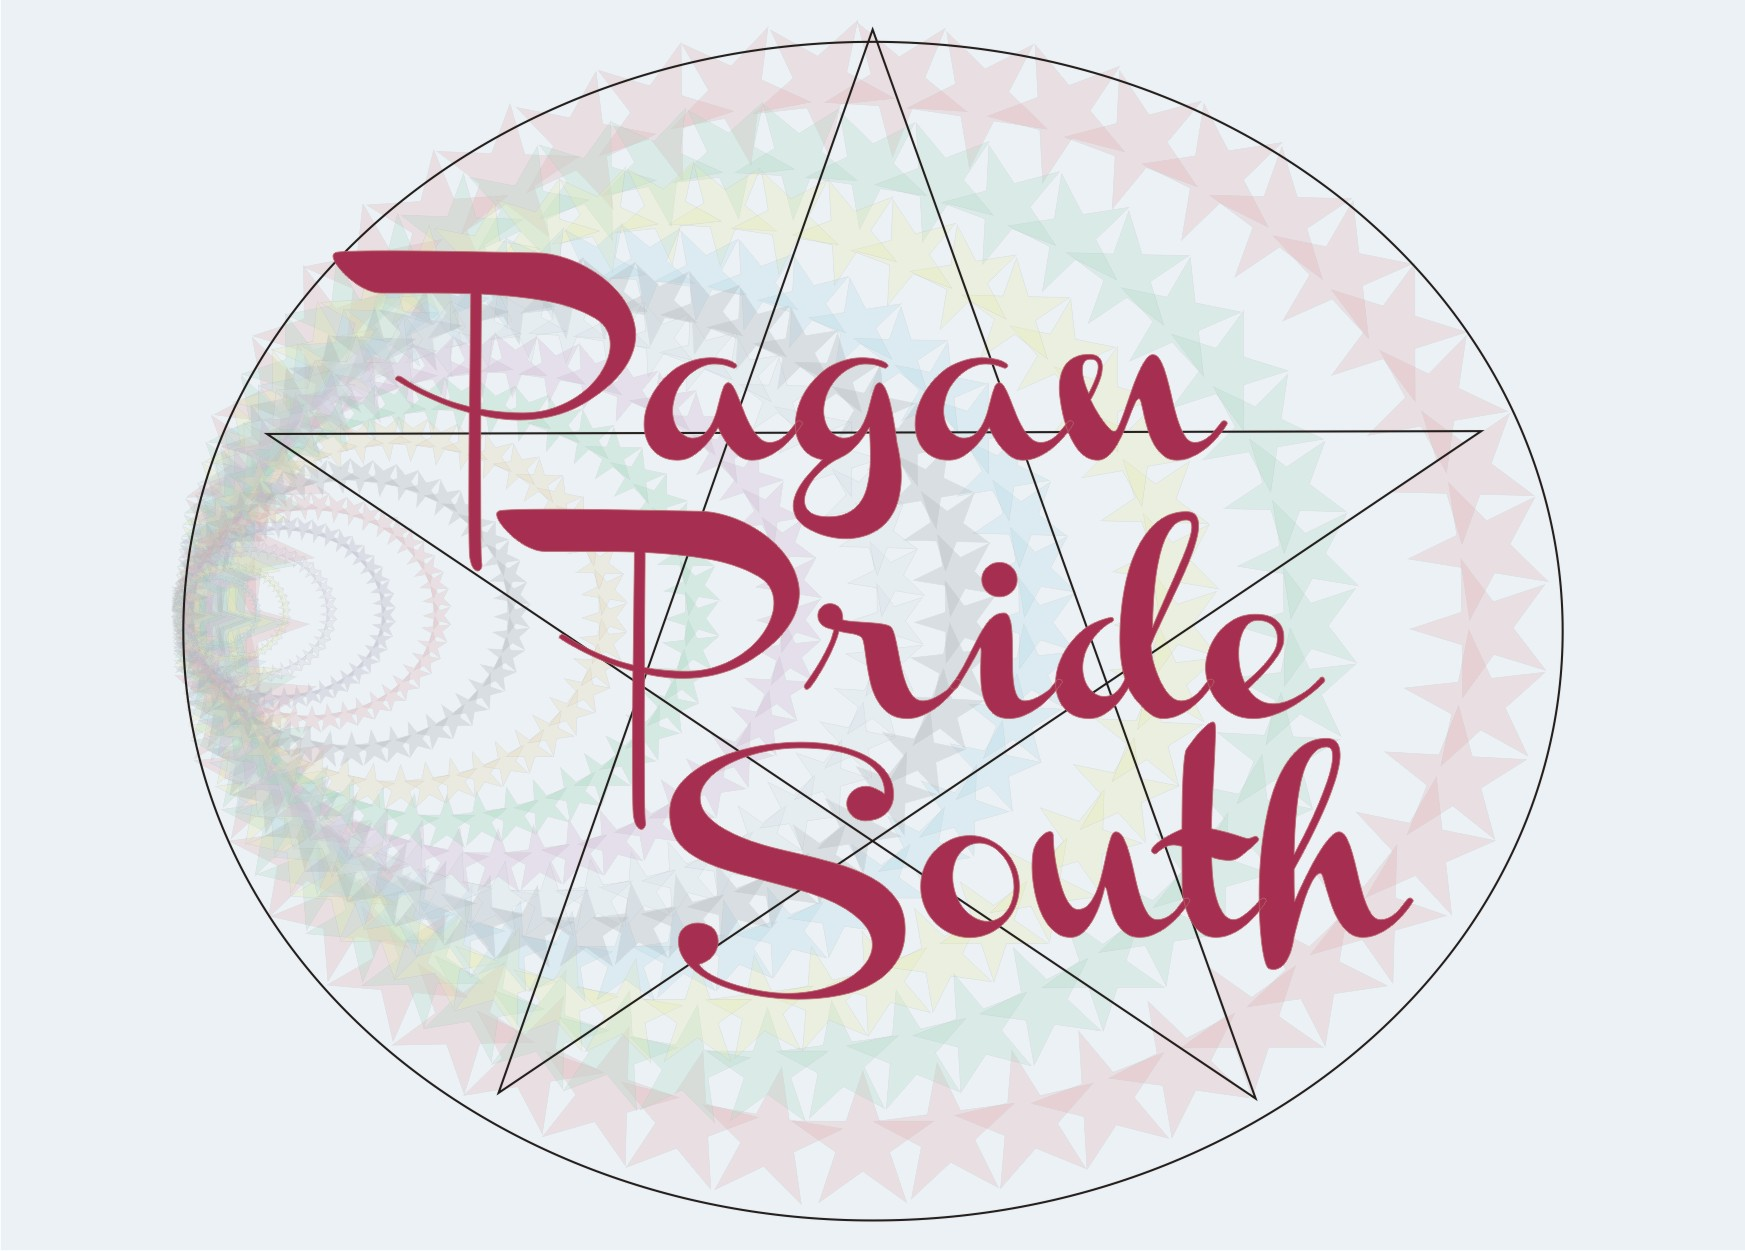 Pagan Pride South